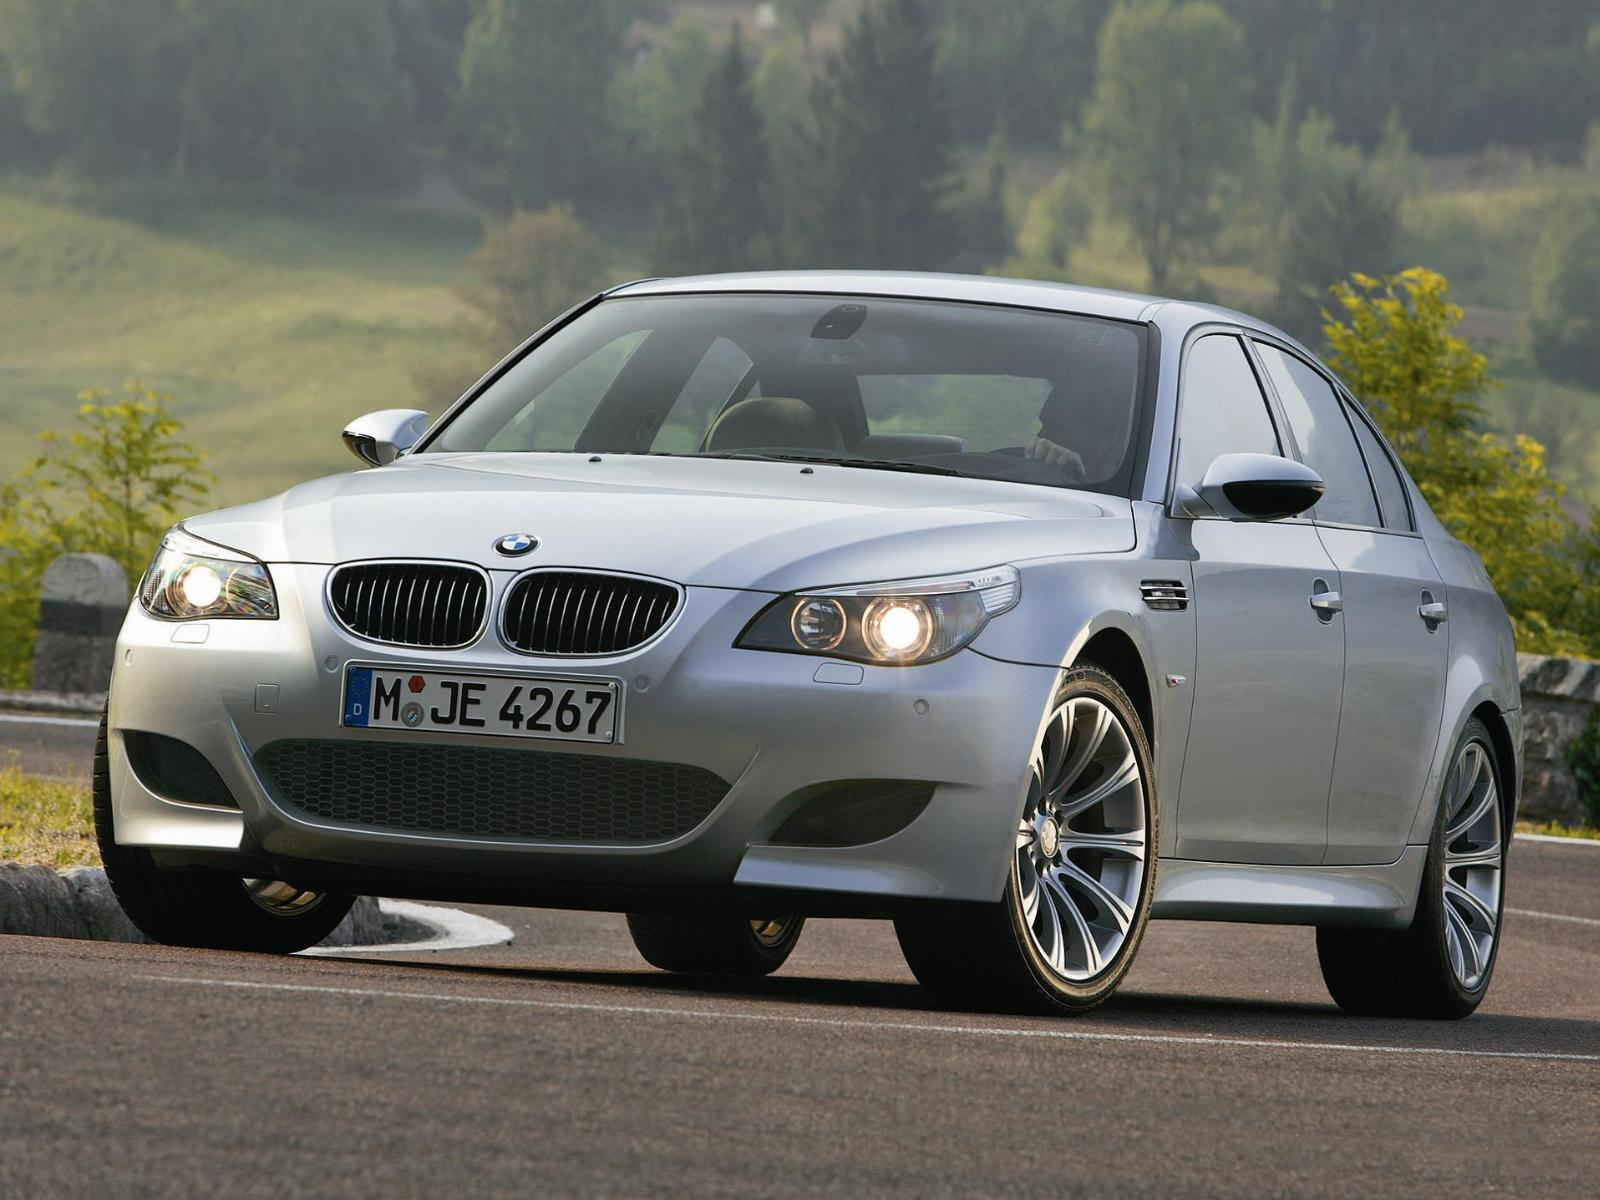 bmw m5 e60 photos photogallery with 43 pics. Black Bedroom Furniture Sets. Home Design Ideas